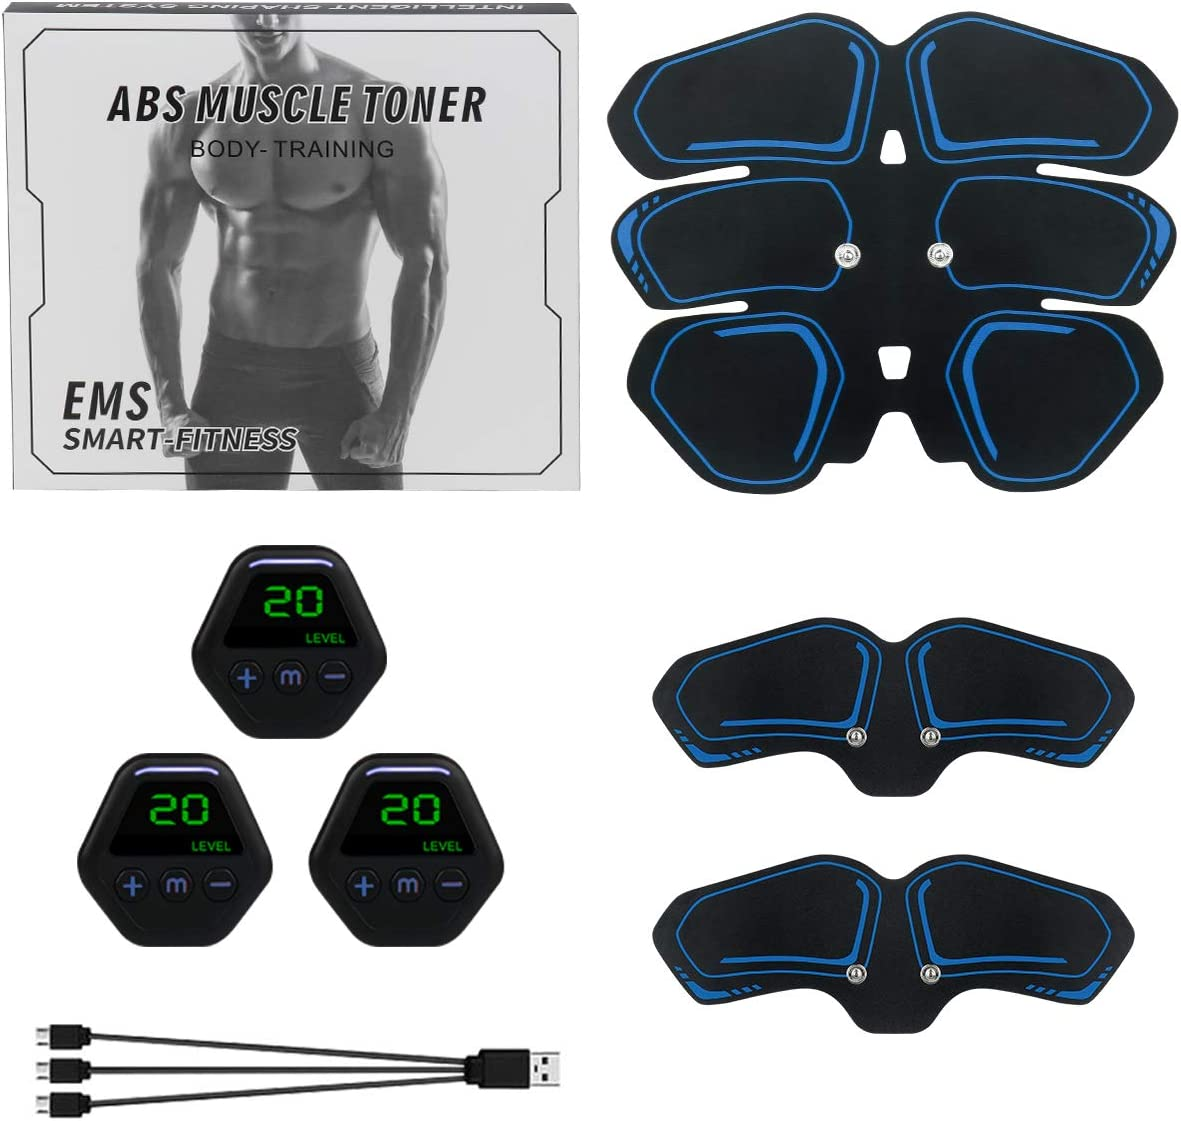 MEILYLA Muscle Toner Abdominal Toning Belt for Men Women ABS Trainer Portable Unisex Fitness Training Gear Home Office Exercise Blue : Sports & Outdoors